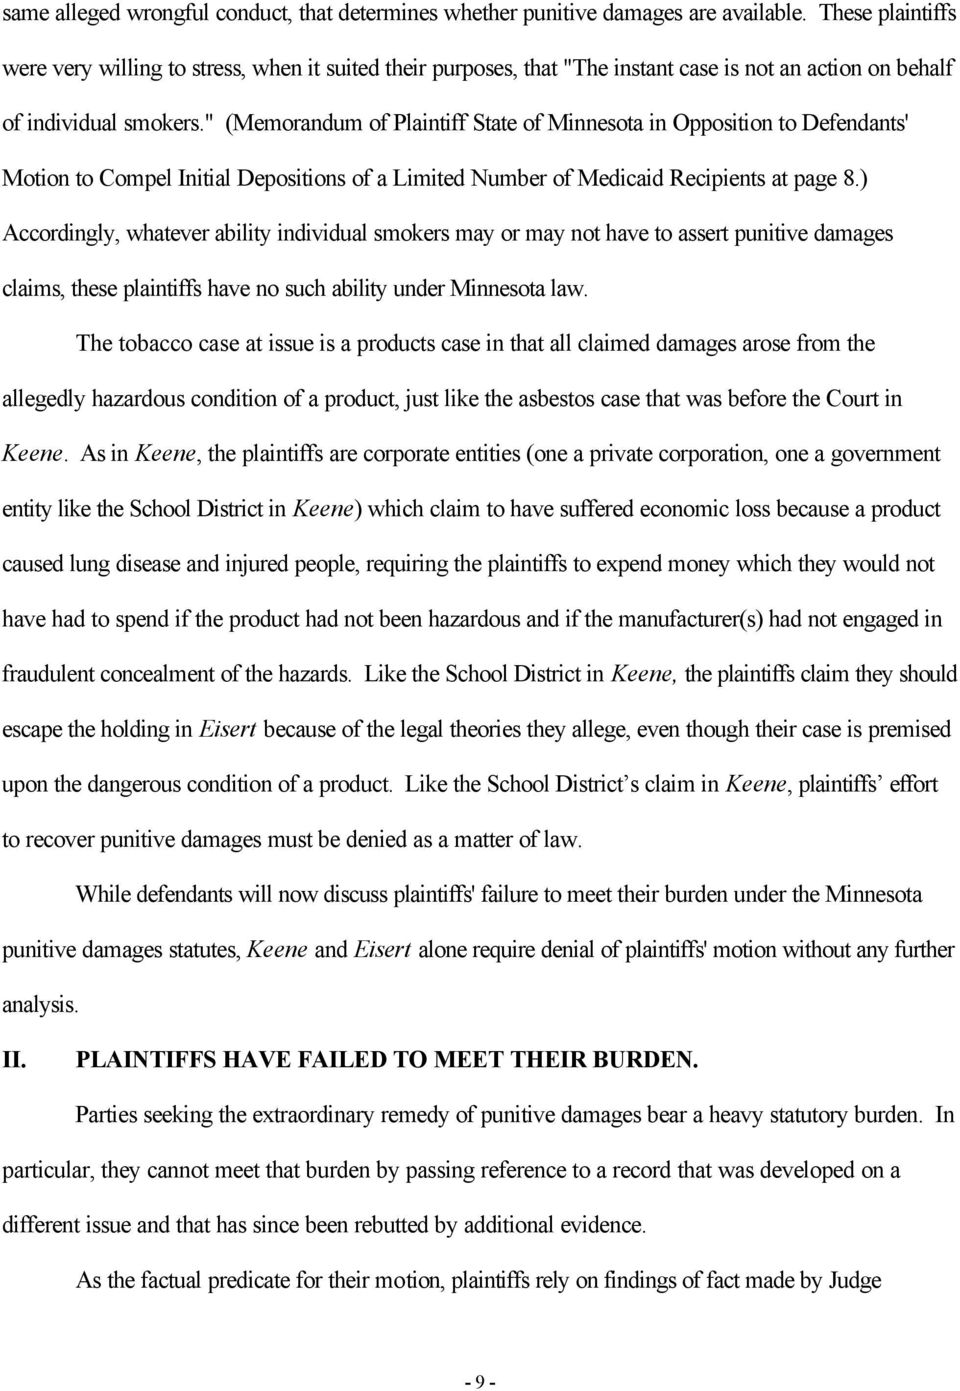 """ (Memorandum of Plaintiff State of Minnesota in Opposition to Defendants' Motion to Compel Initial Depositions of a Limited Number of Medicaid Recipients at page 8."